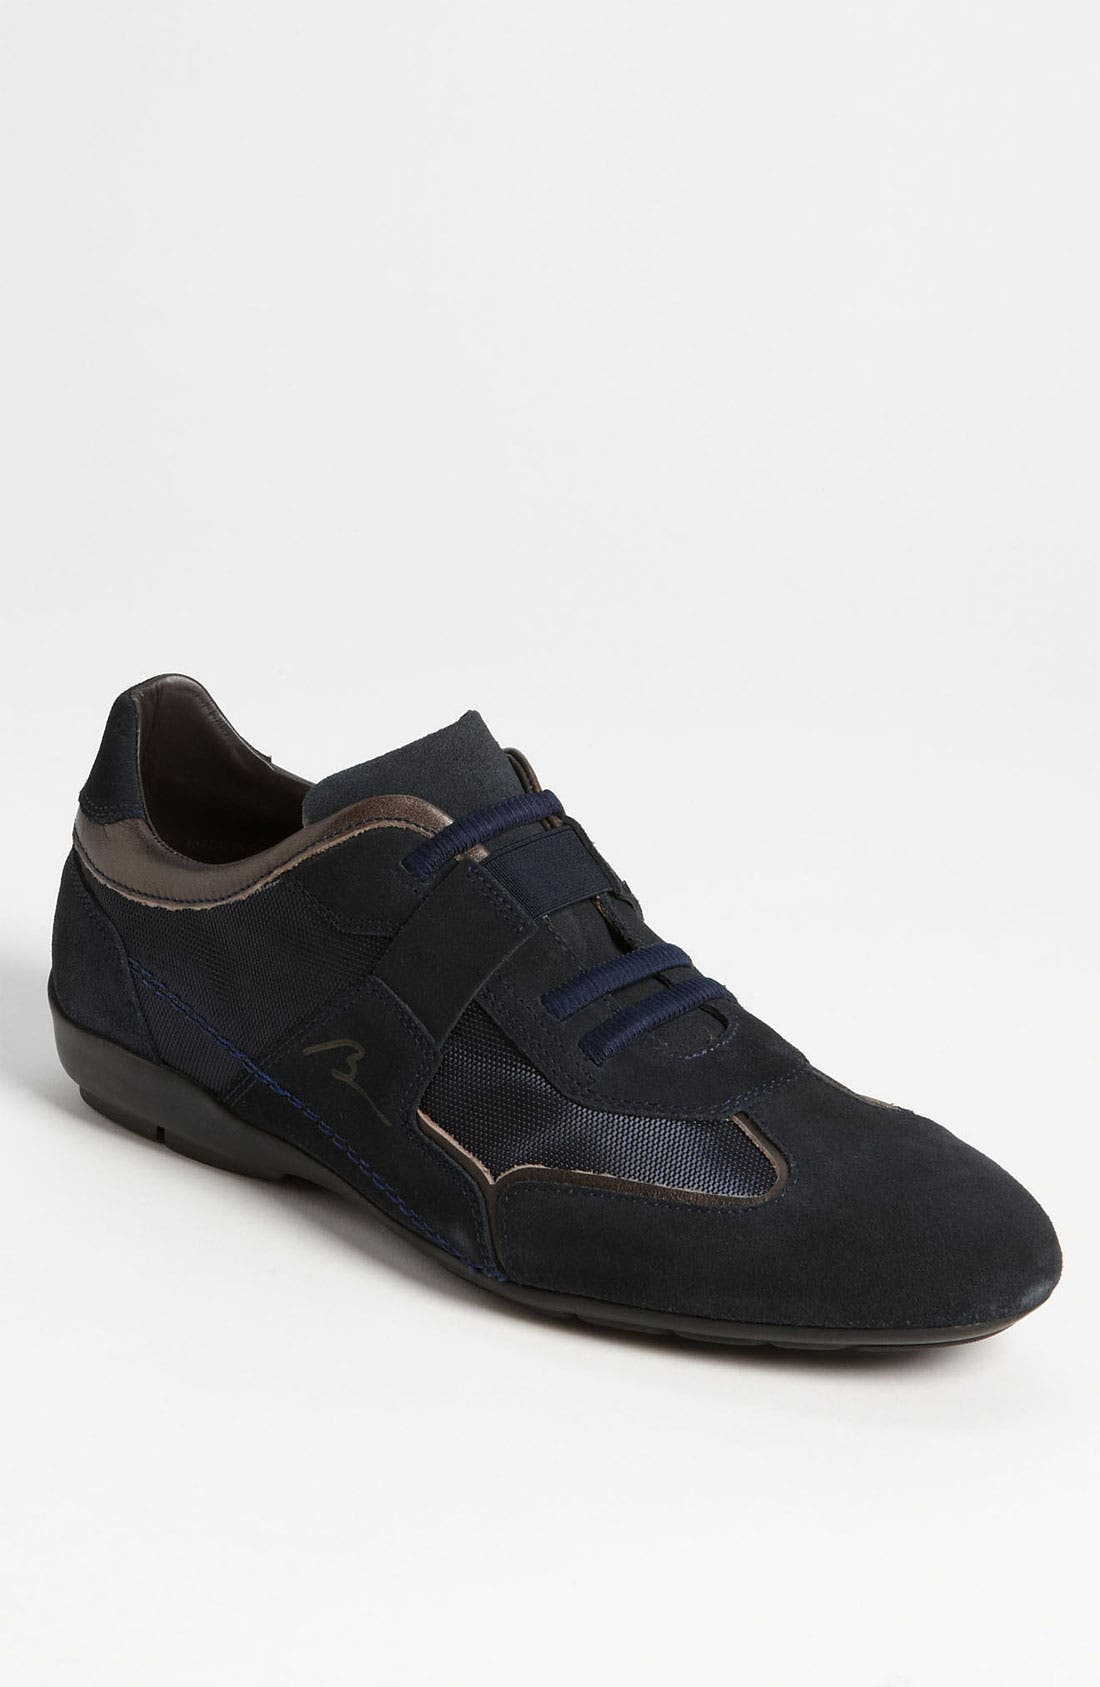 Alternate Image 1 Selected - Bacco Bucci 'Palmiro' Sneaker